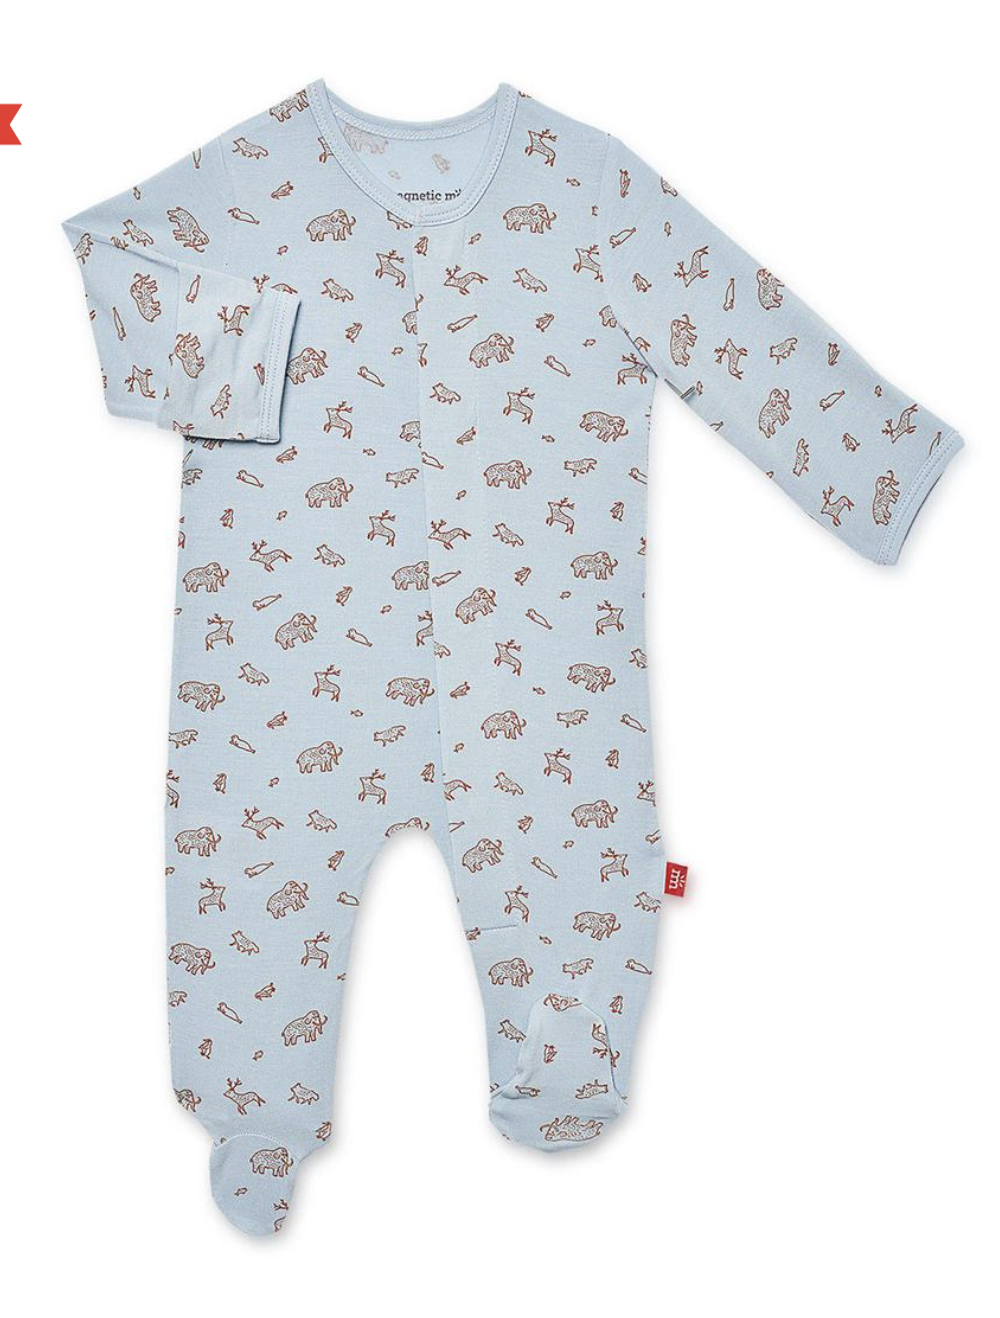 MAGNIFICENT BABY Jasper Modal Magnetic Footie